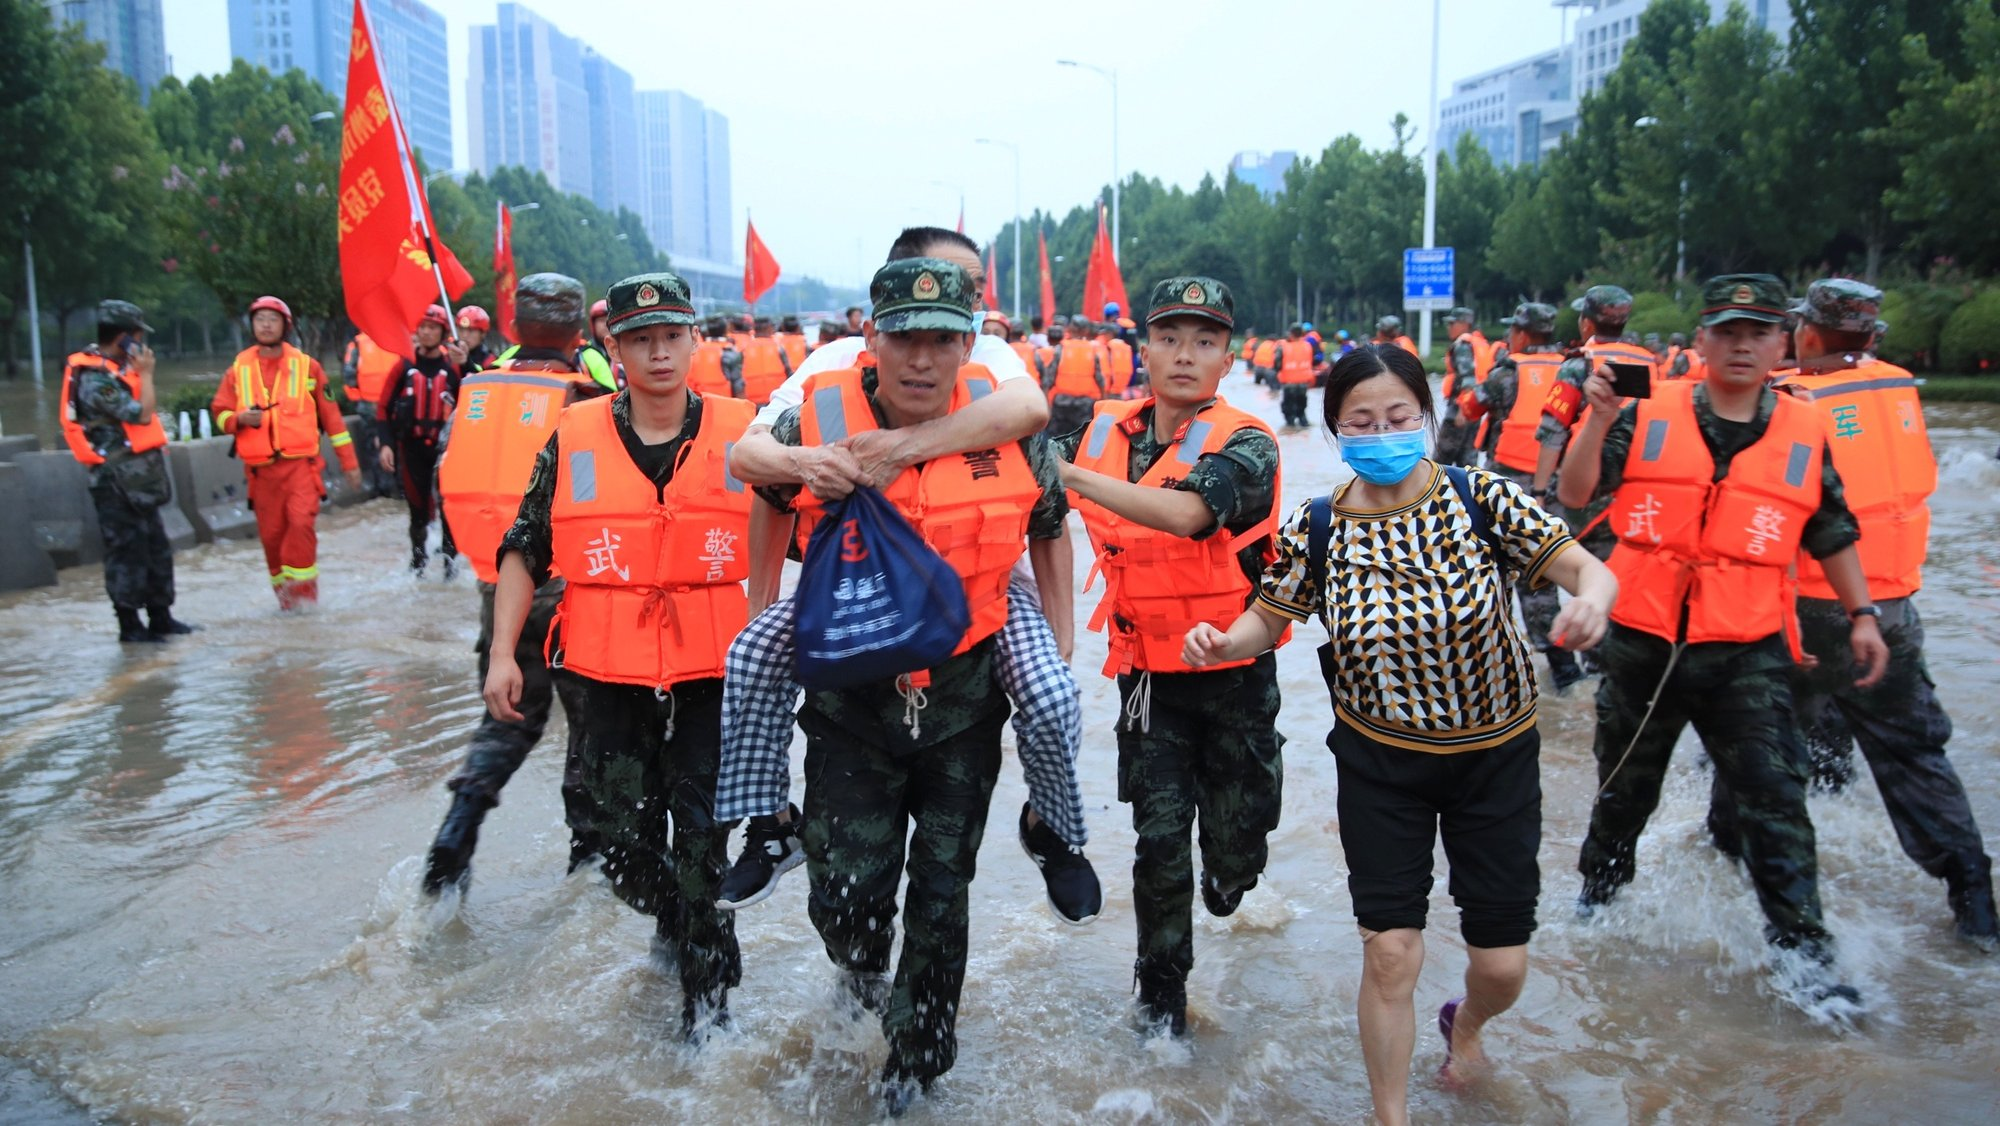 epa09358203 Rescuers evacuate people from a hospital where about 3,000 people were trapped by the flood in Zhengzhou, central China's Henan province, 22 July 2021. Thirty-three people were found dead in the flooding, and eight more are missing.  EPA/STRINGER CHINA OUT